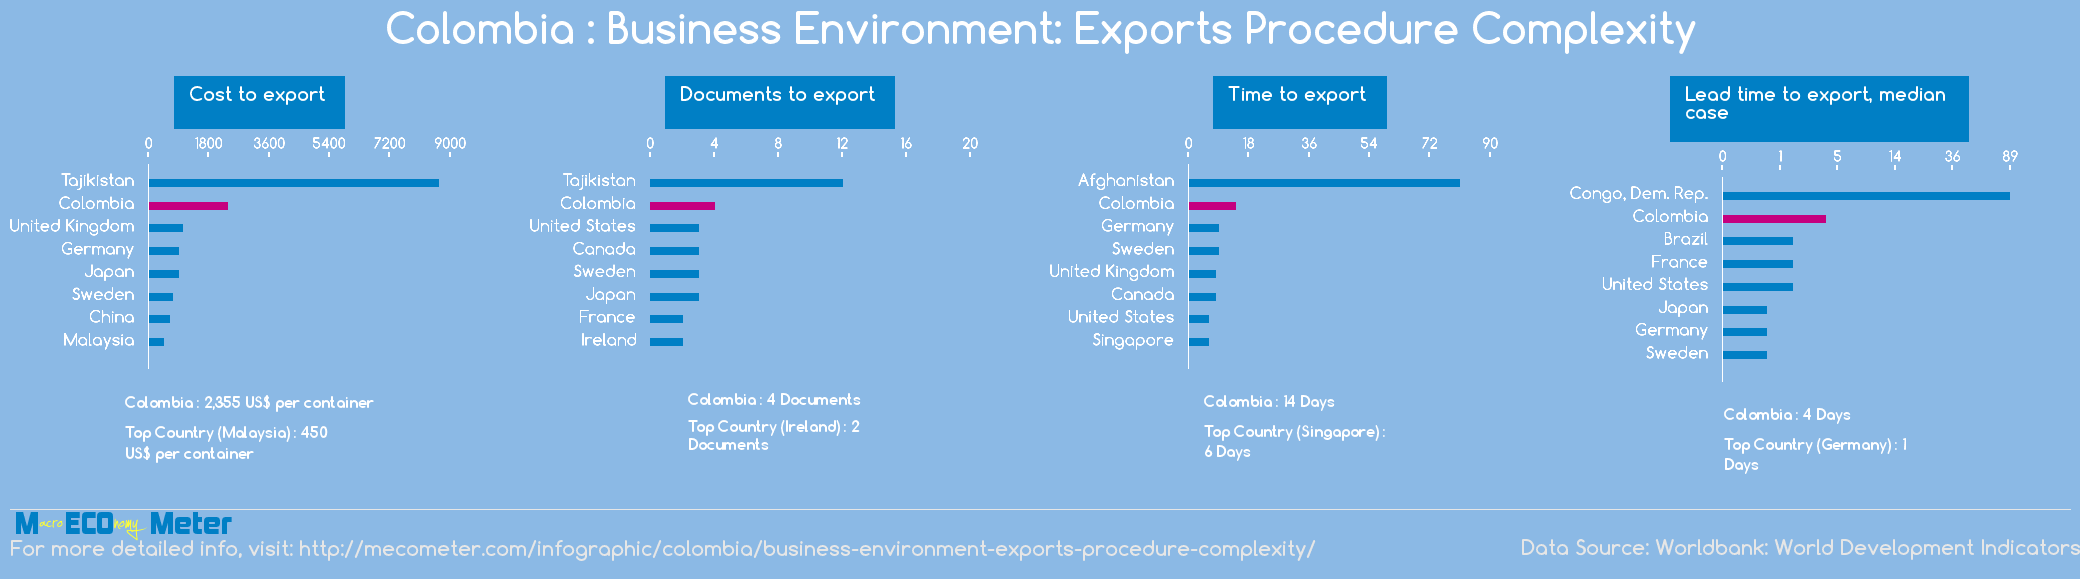 Colombia : Business Environment: Exports Procedure Complexity